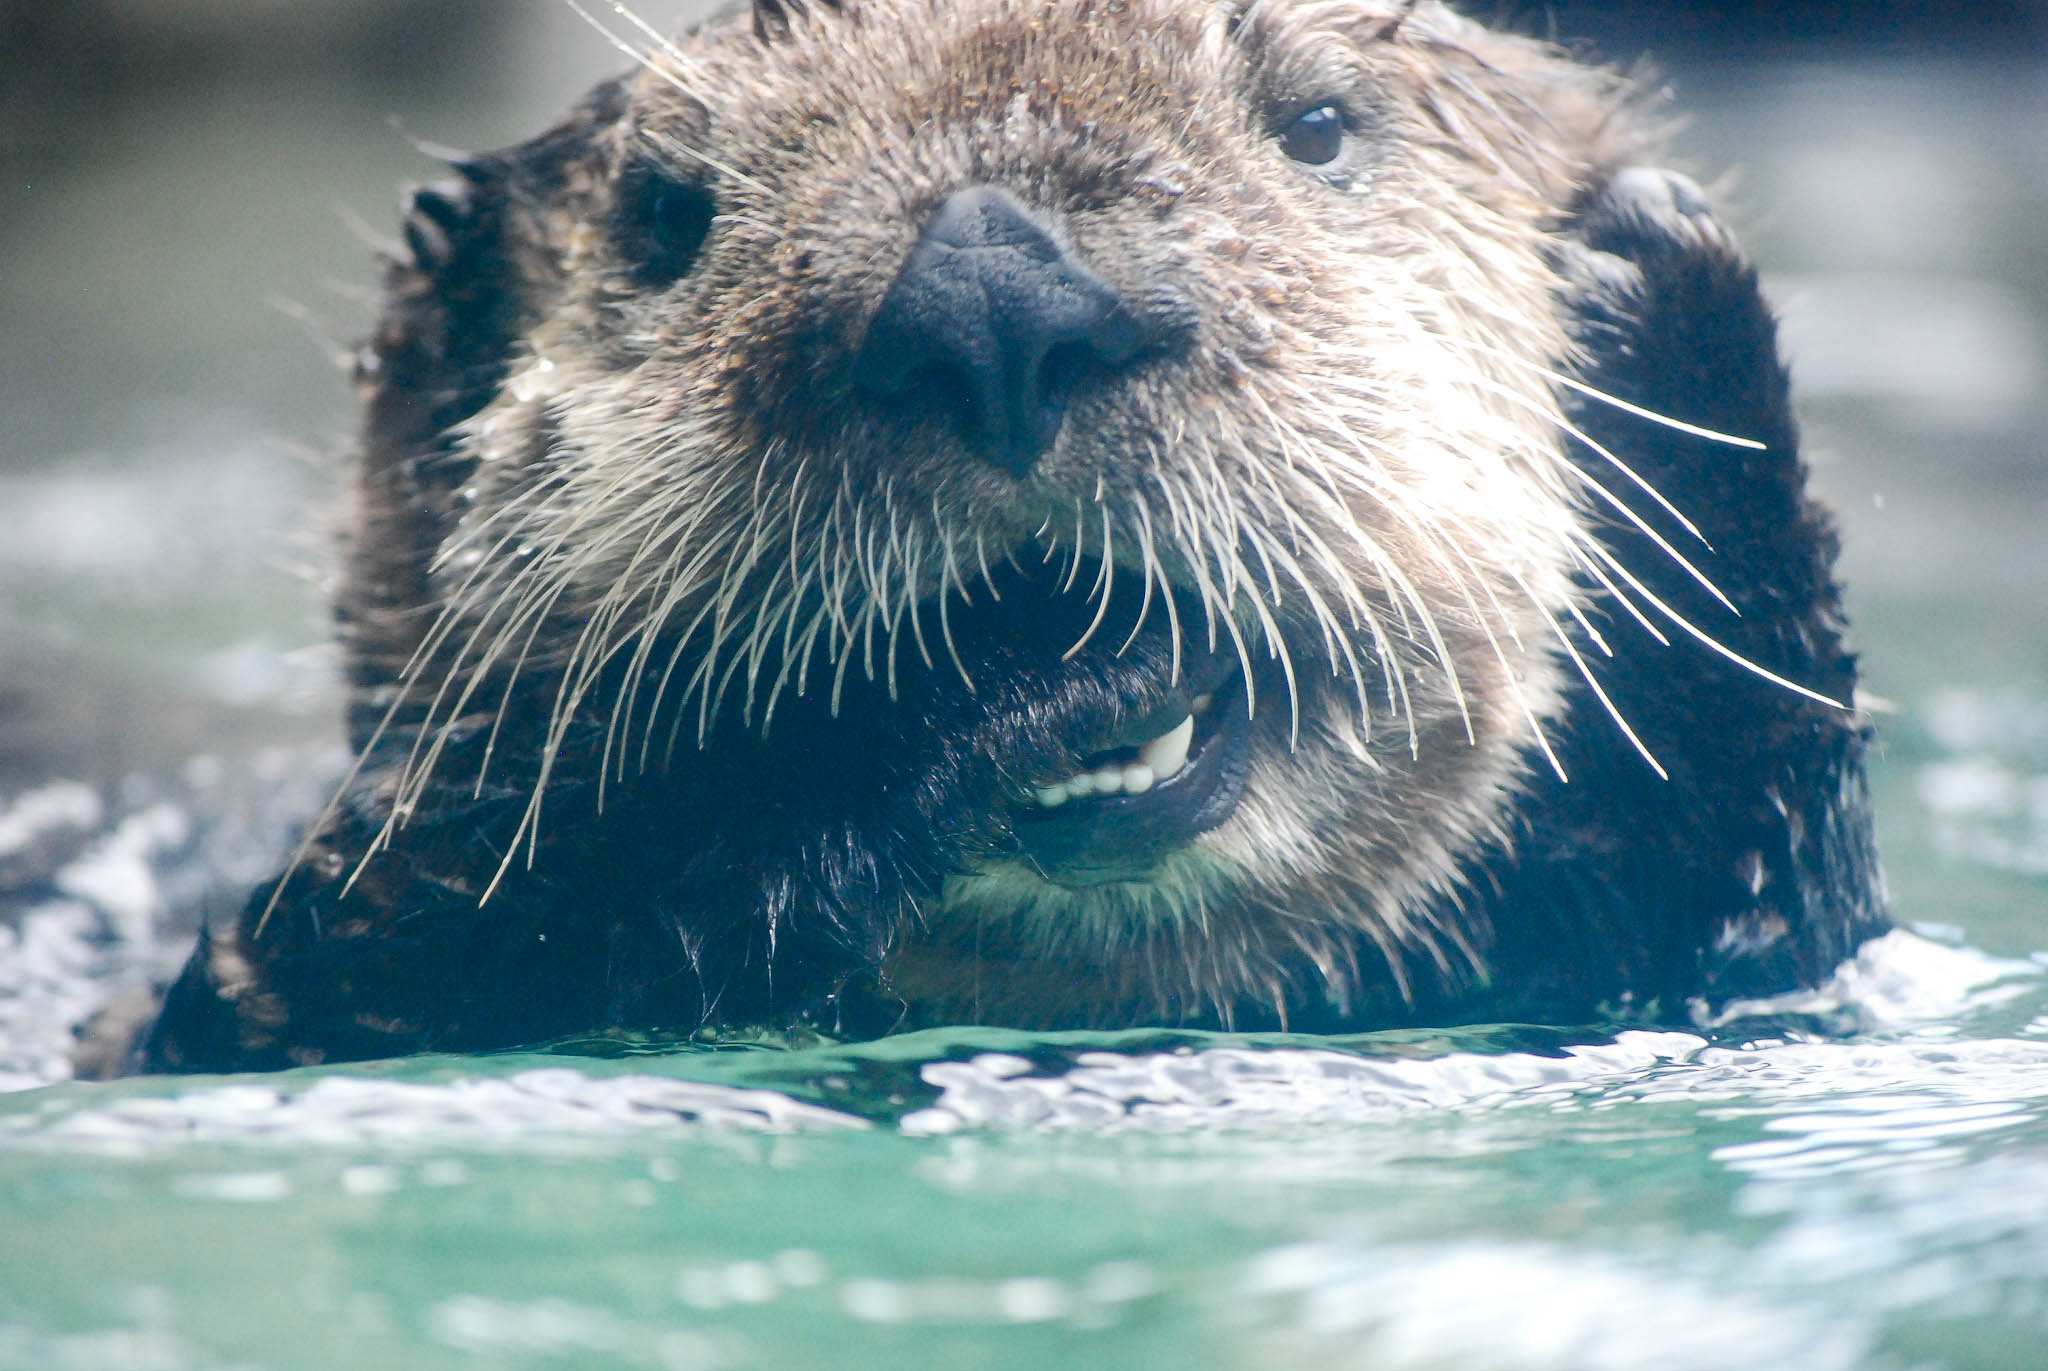 Closeup of Cute Sea Otter Being Cute